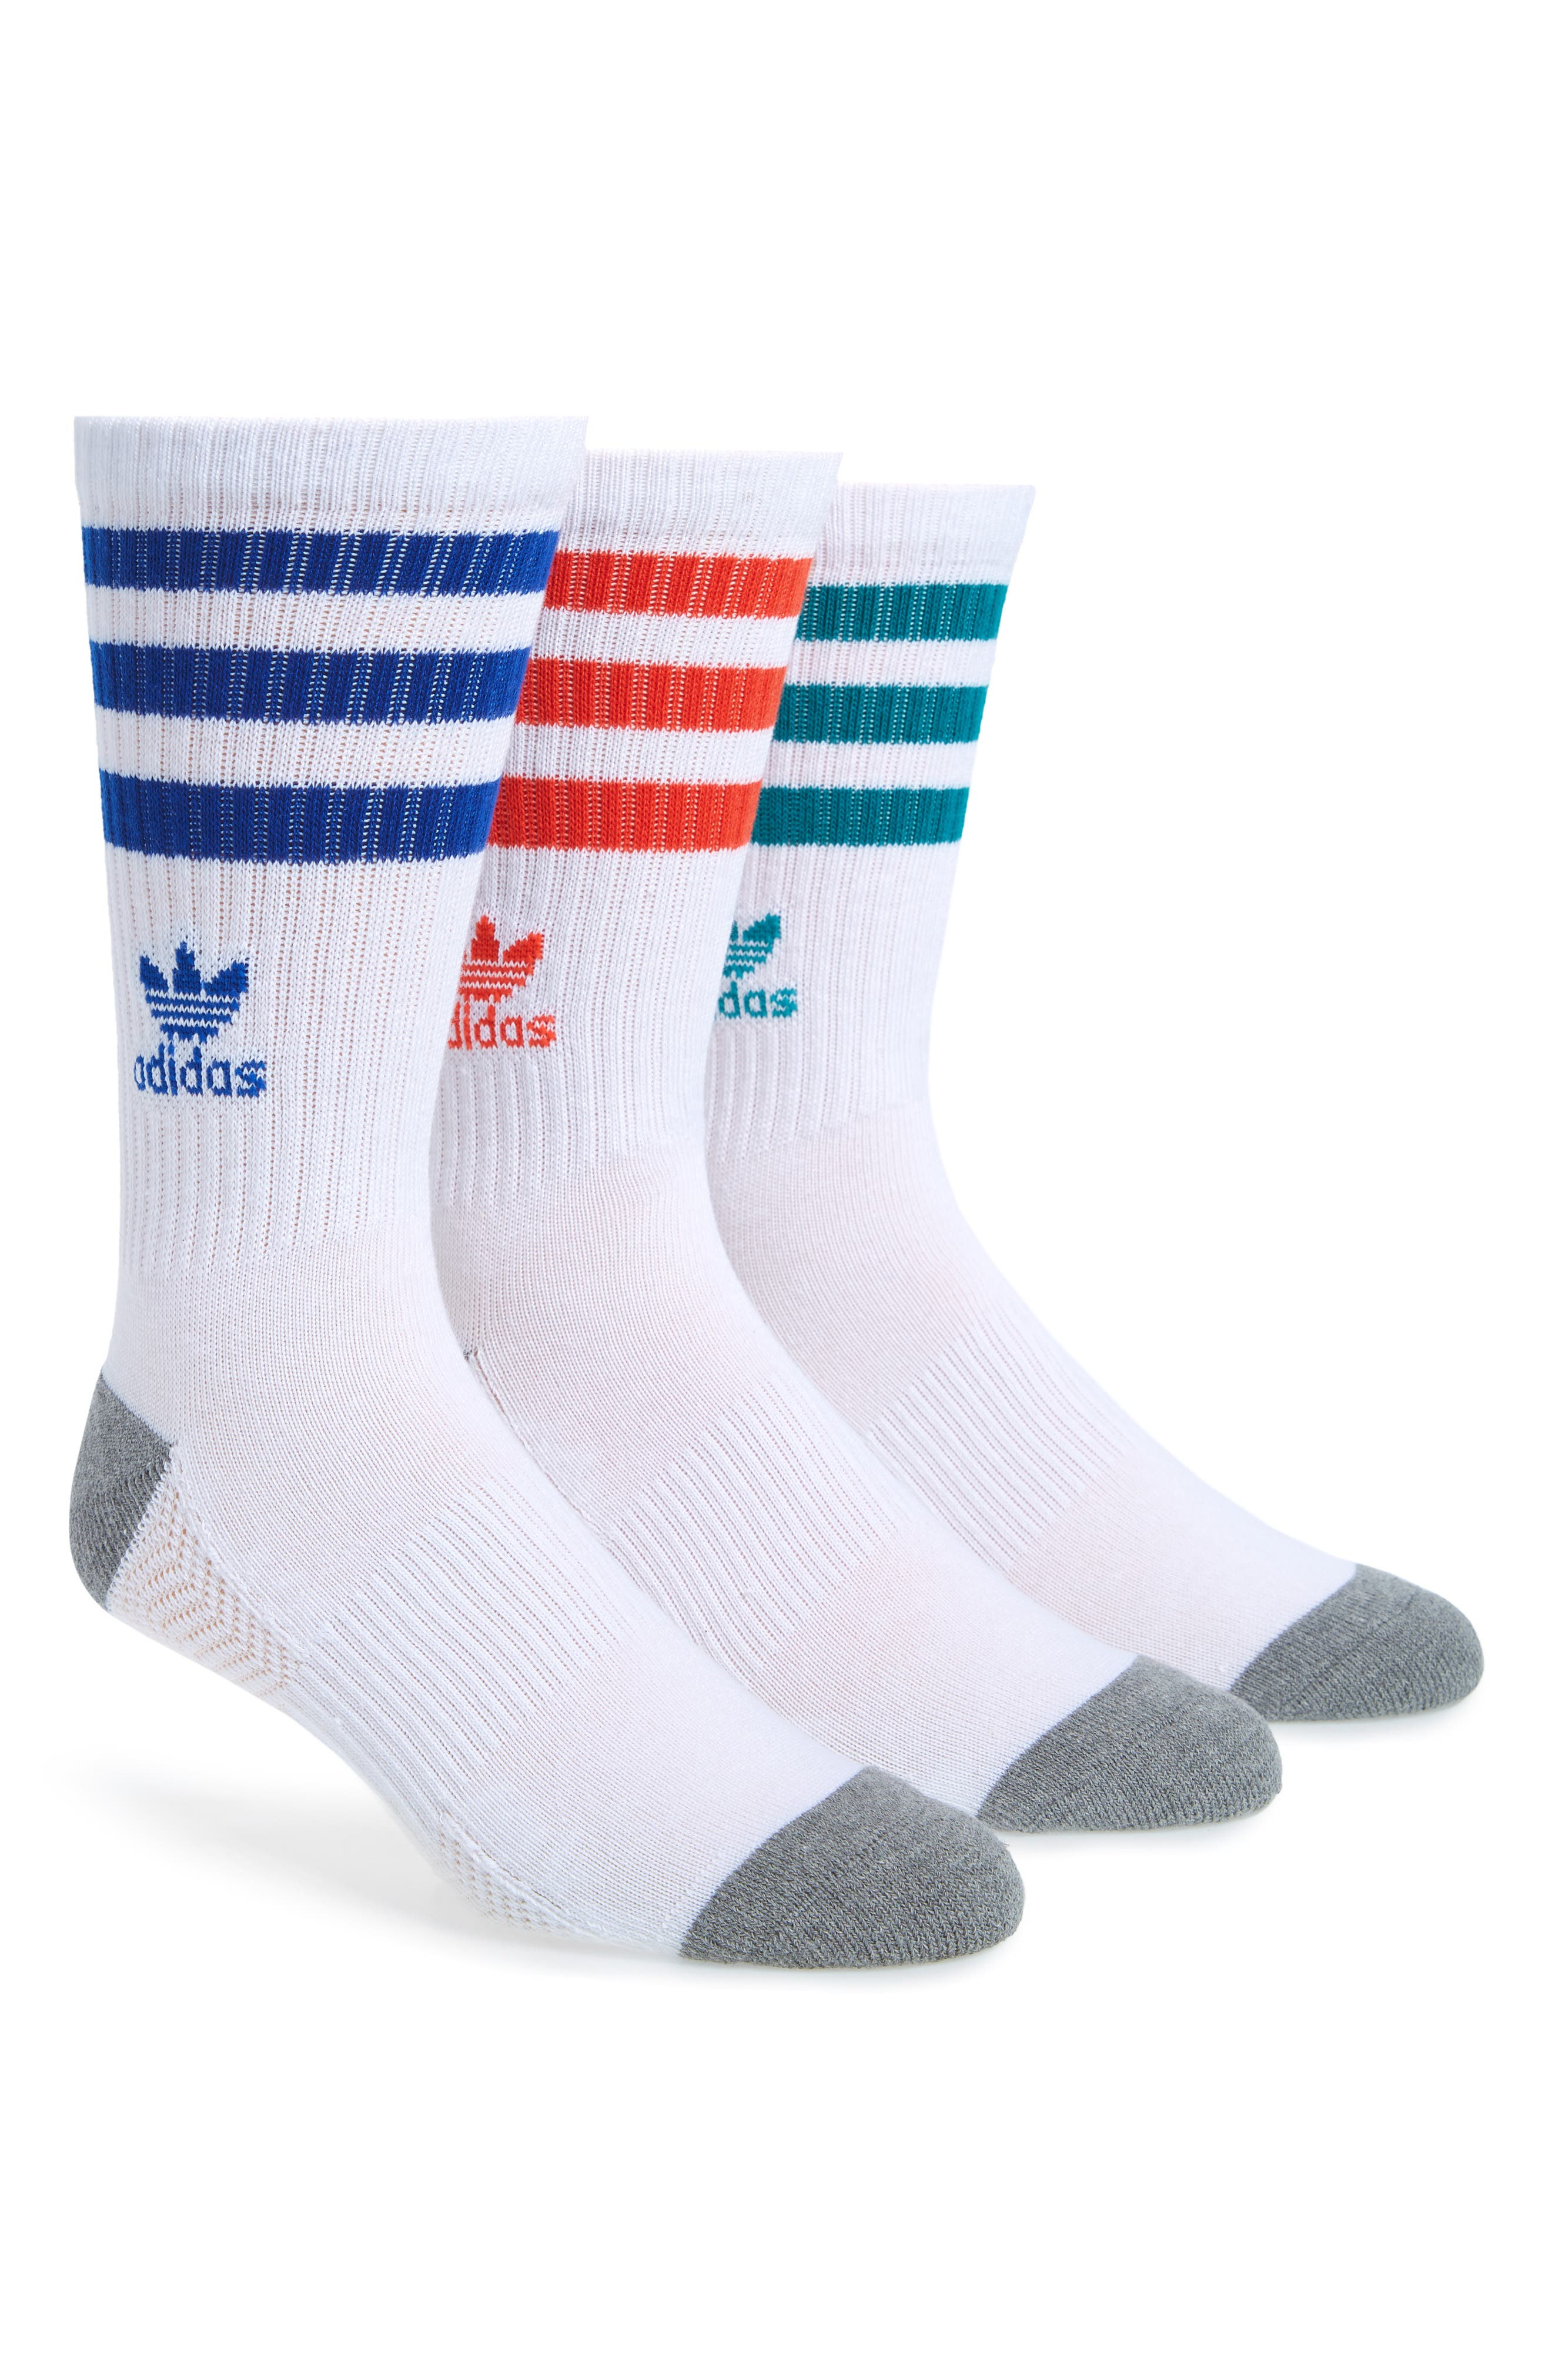 Roller Assorted 3-Pack Crew Socks,                             Main thumbnail 1, color,                             White/ Royal/ Red/ Green